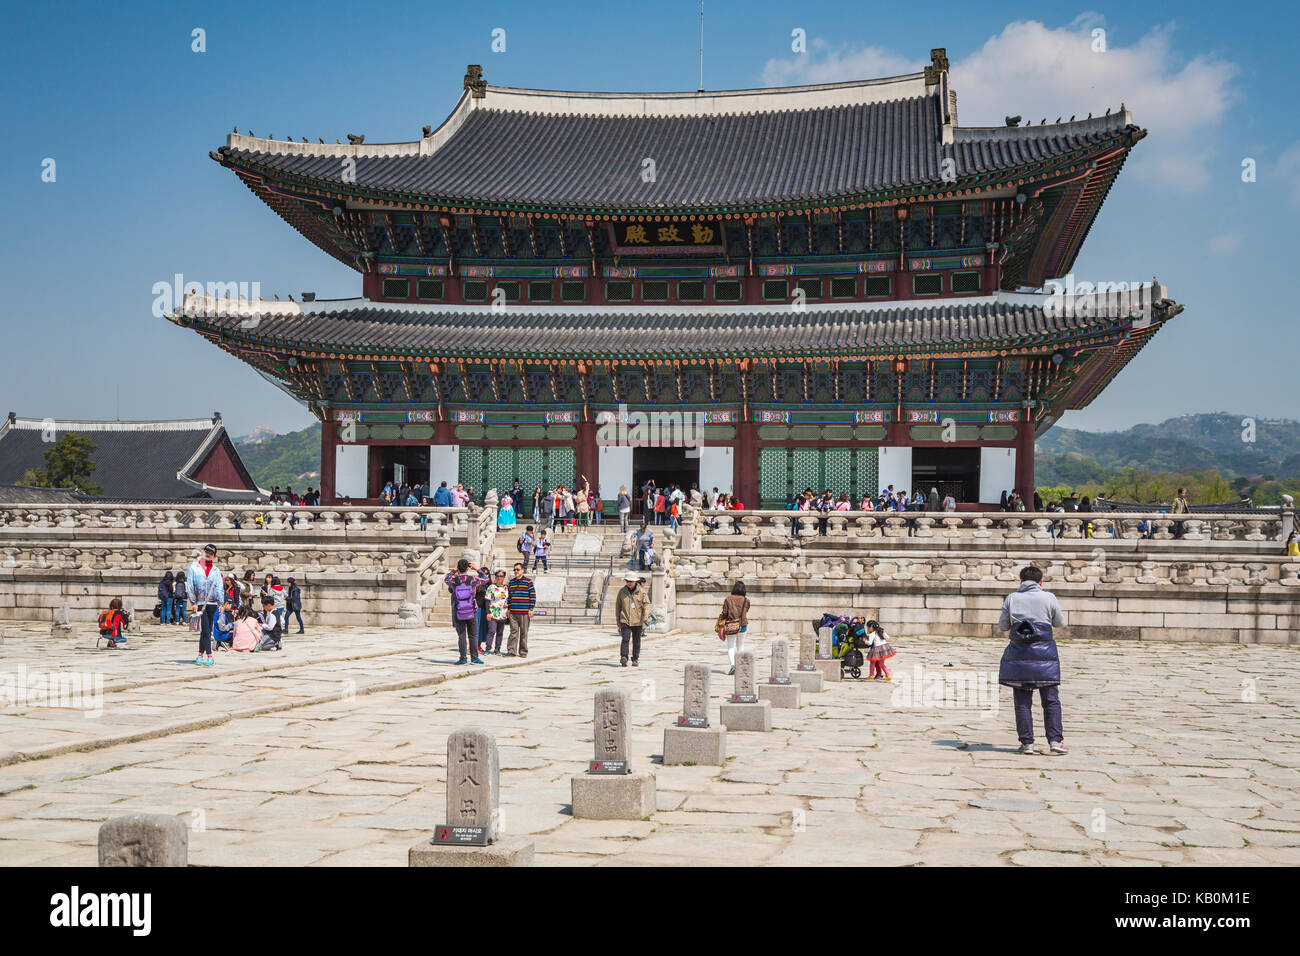 The Gyeongbokgung Royal Palace in Seoul, South Korea, Asia. - Stock Image